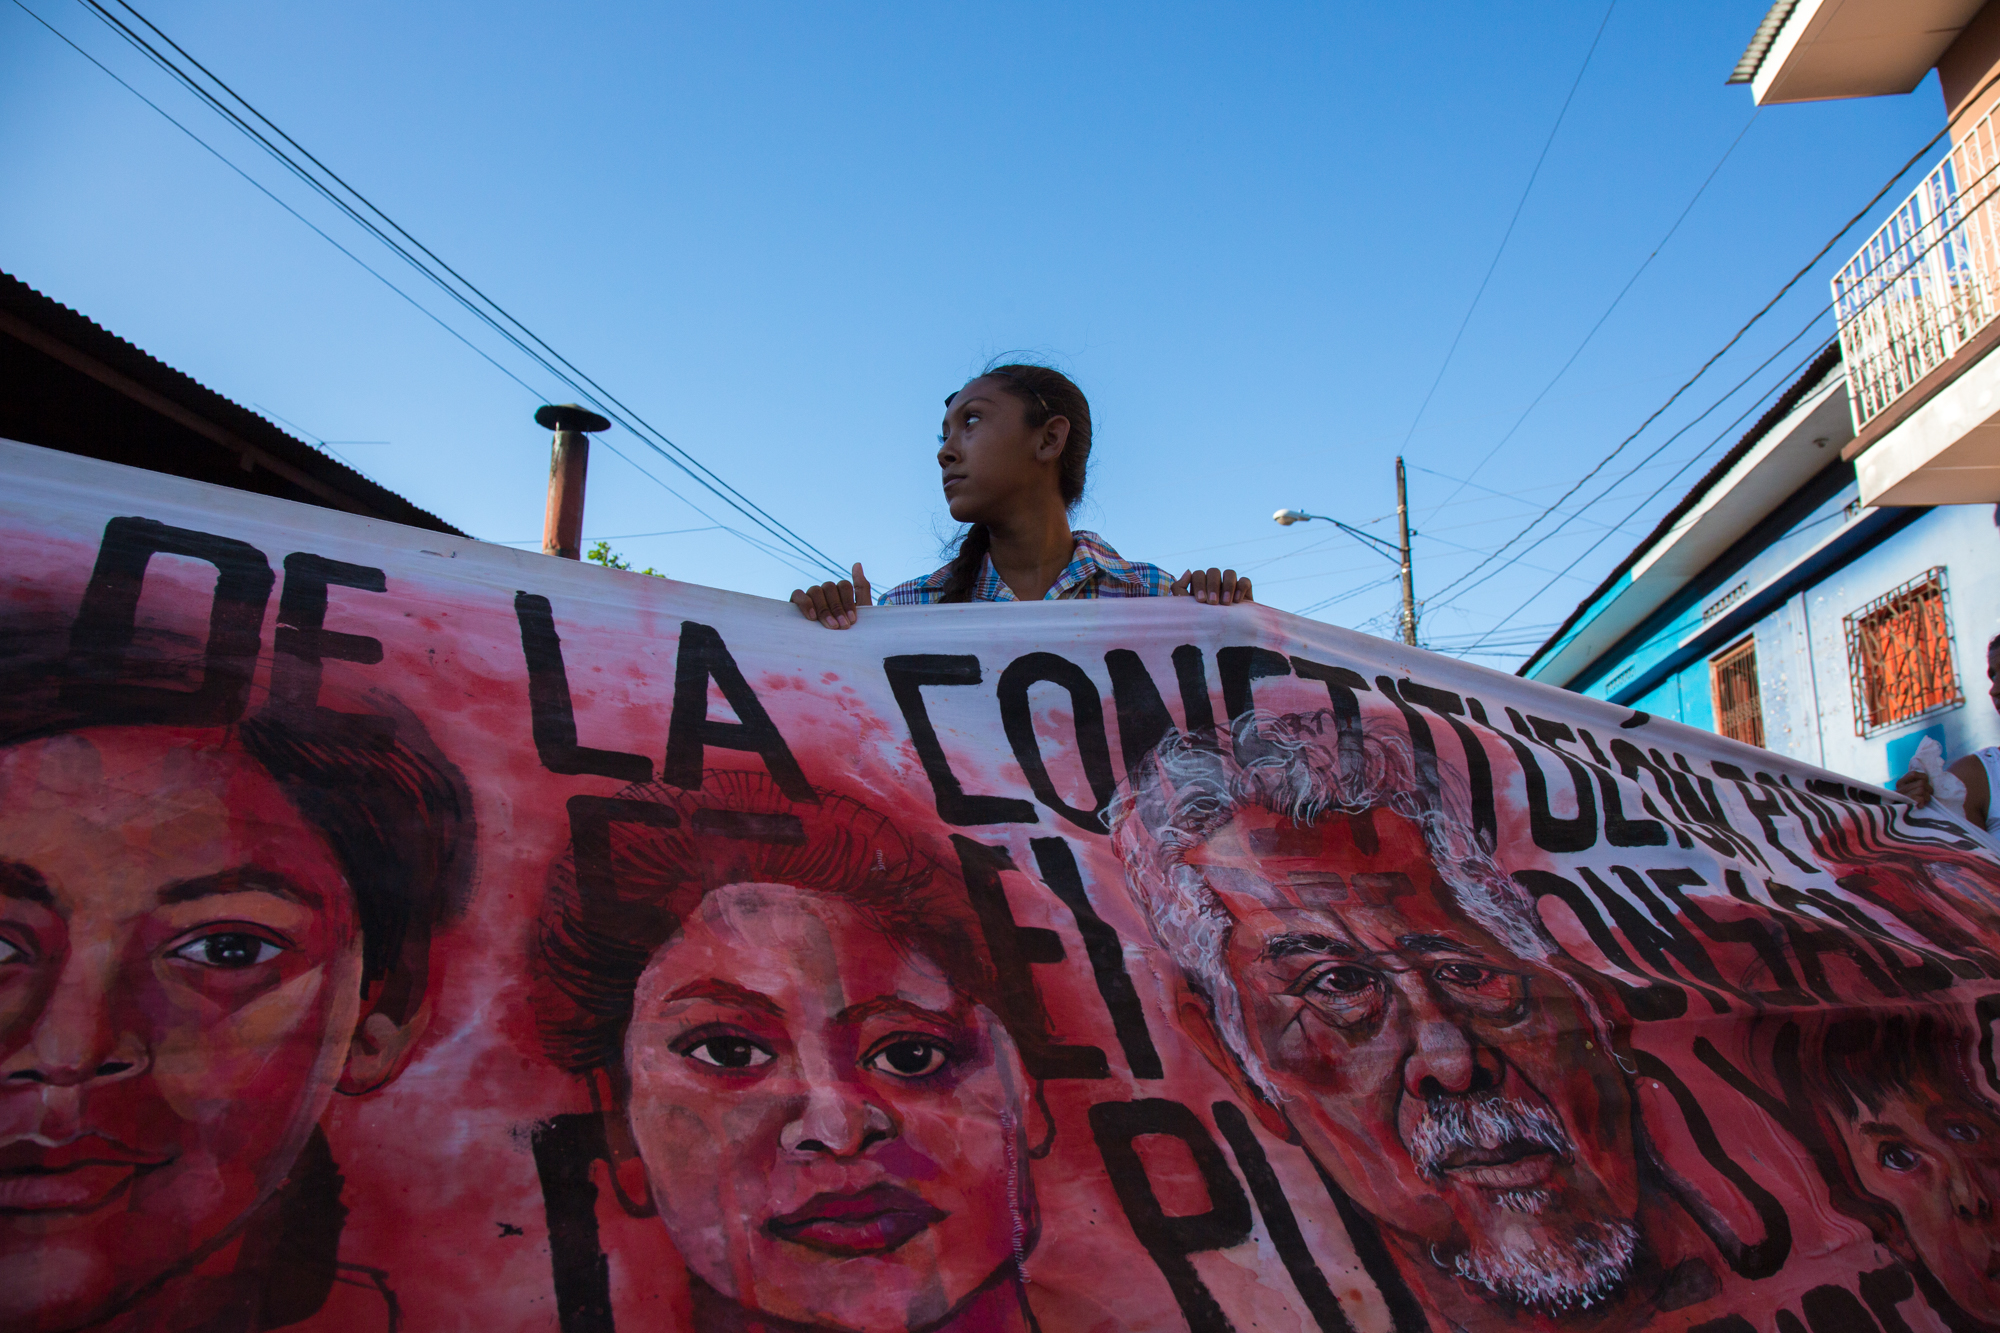 Empalagoso (Saccharine): The Chichigalpa Portrait Project, Banners in Protest. Photo courtesy of Tom Laffay.